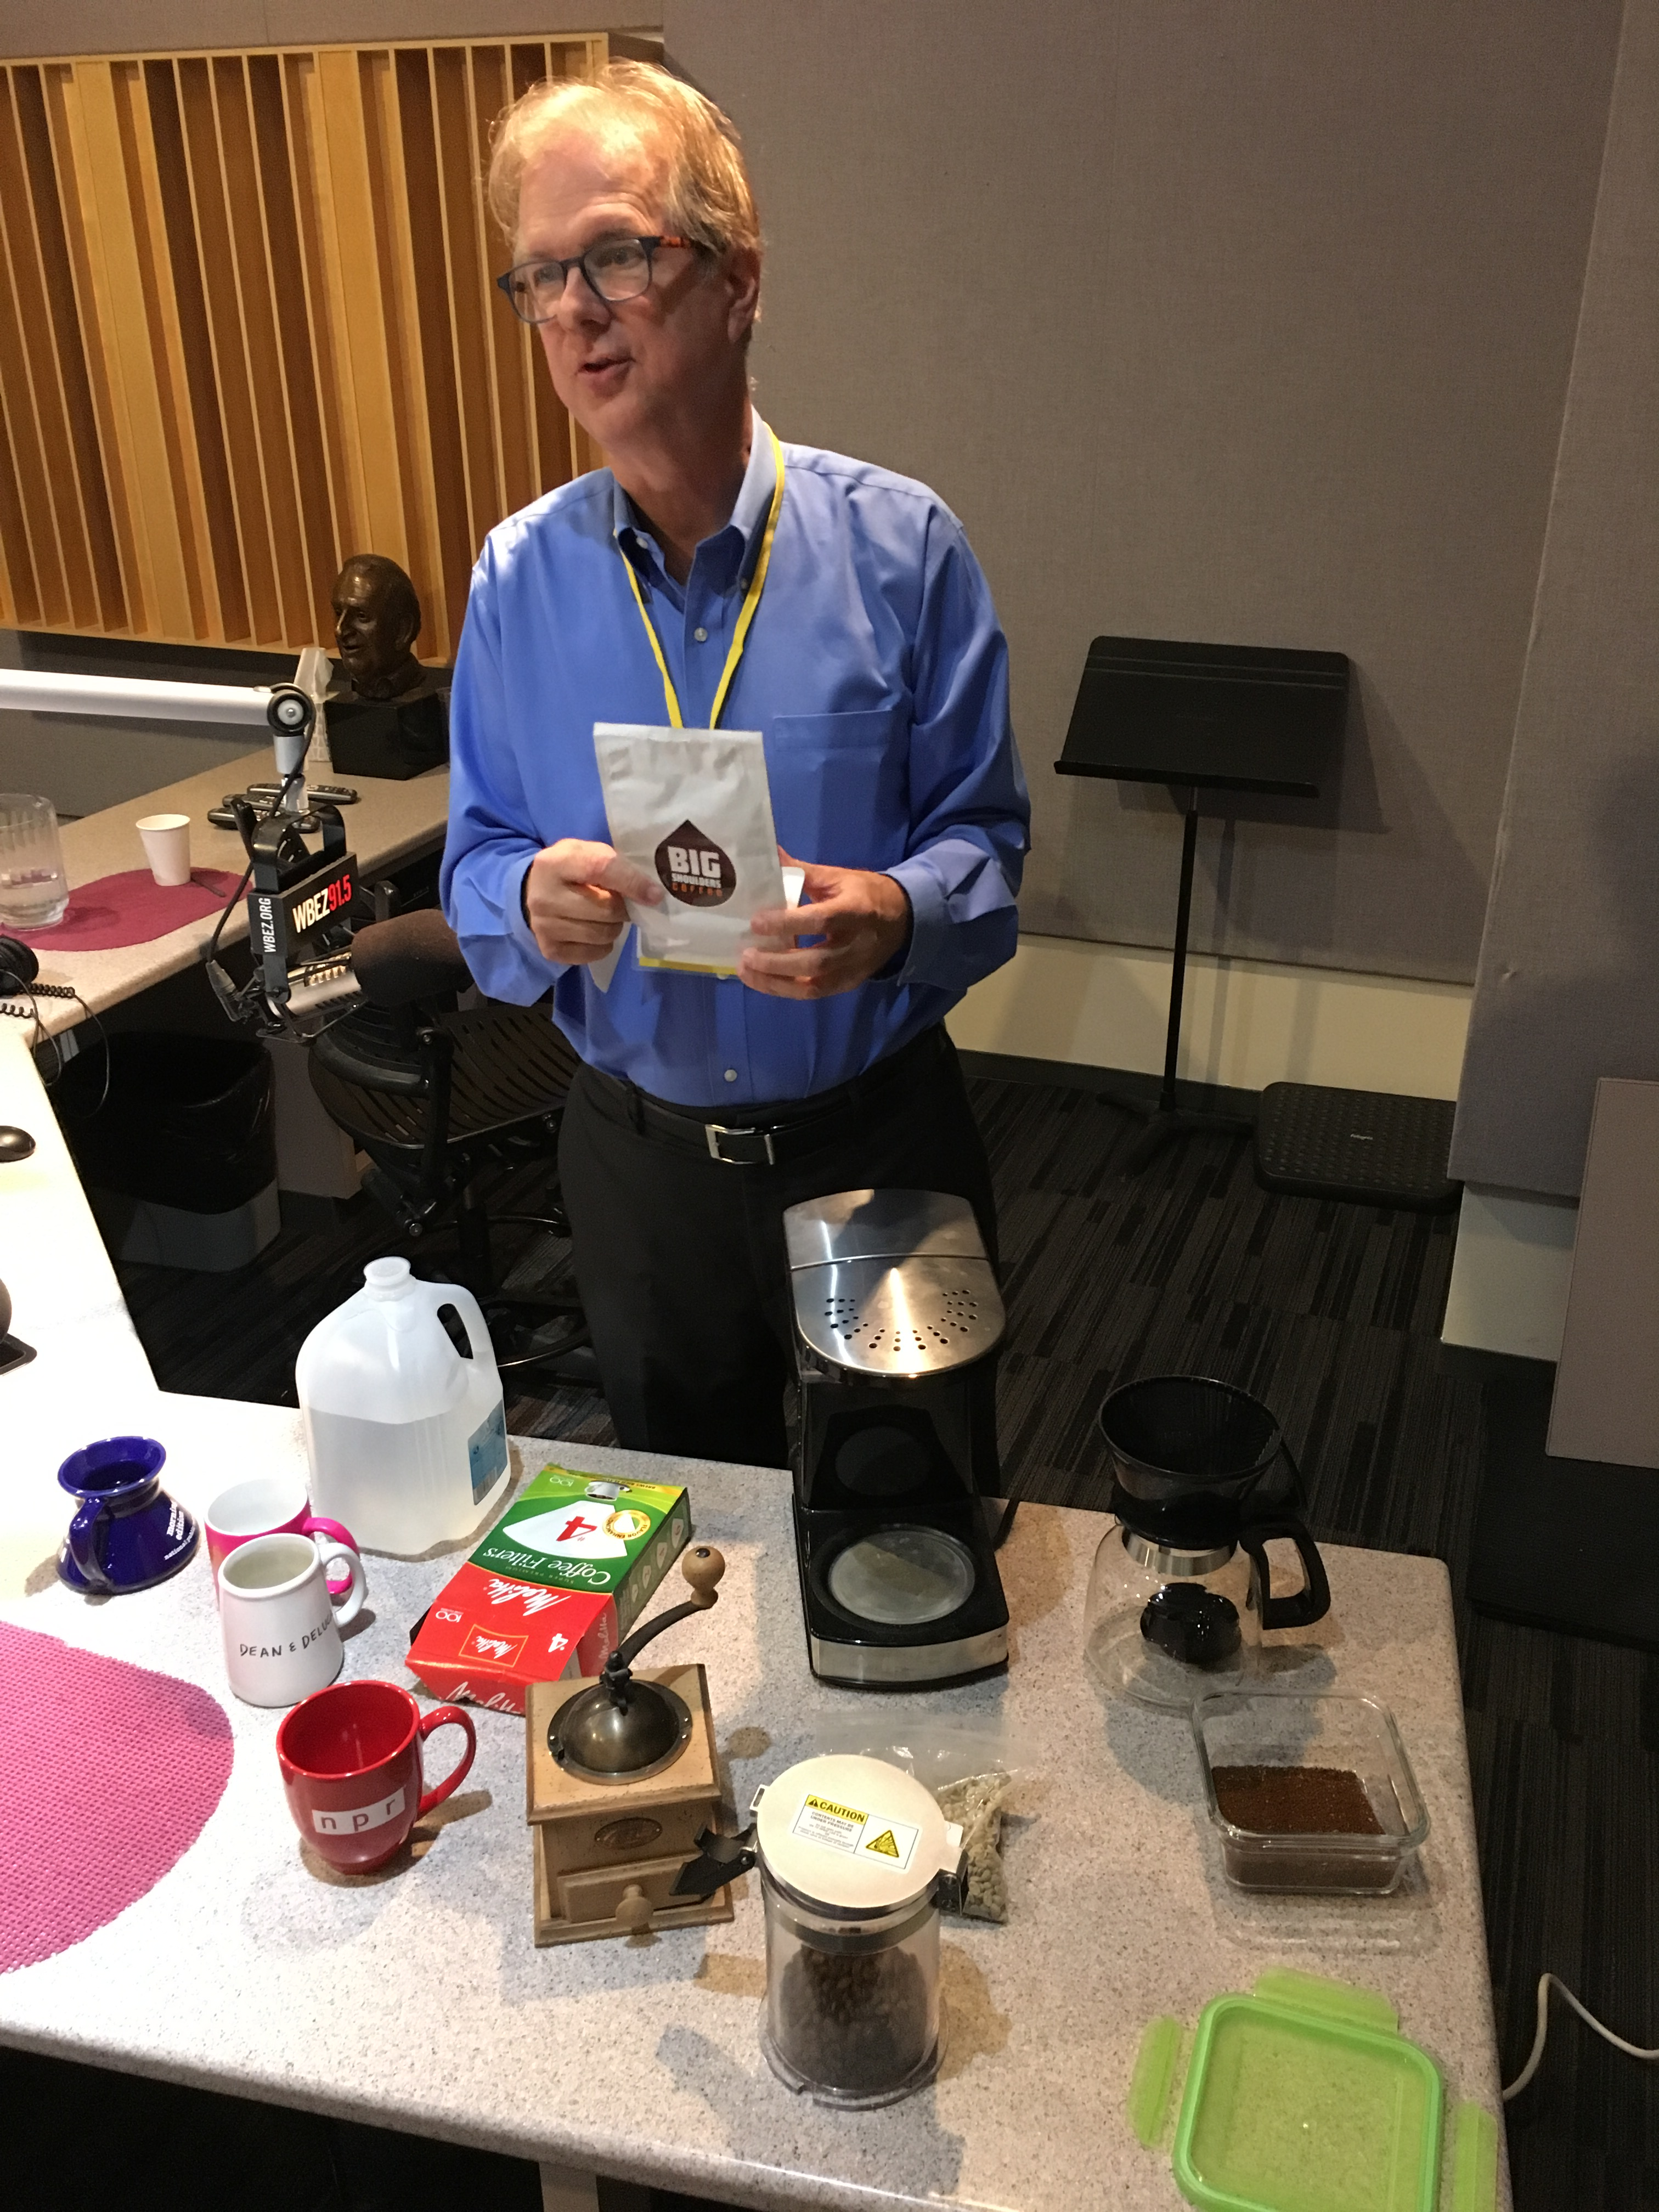 Kevin Sinnott, creator of CoffeeCon, showcasing a variety of coffee accouterments in the WBEZ studio.